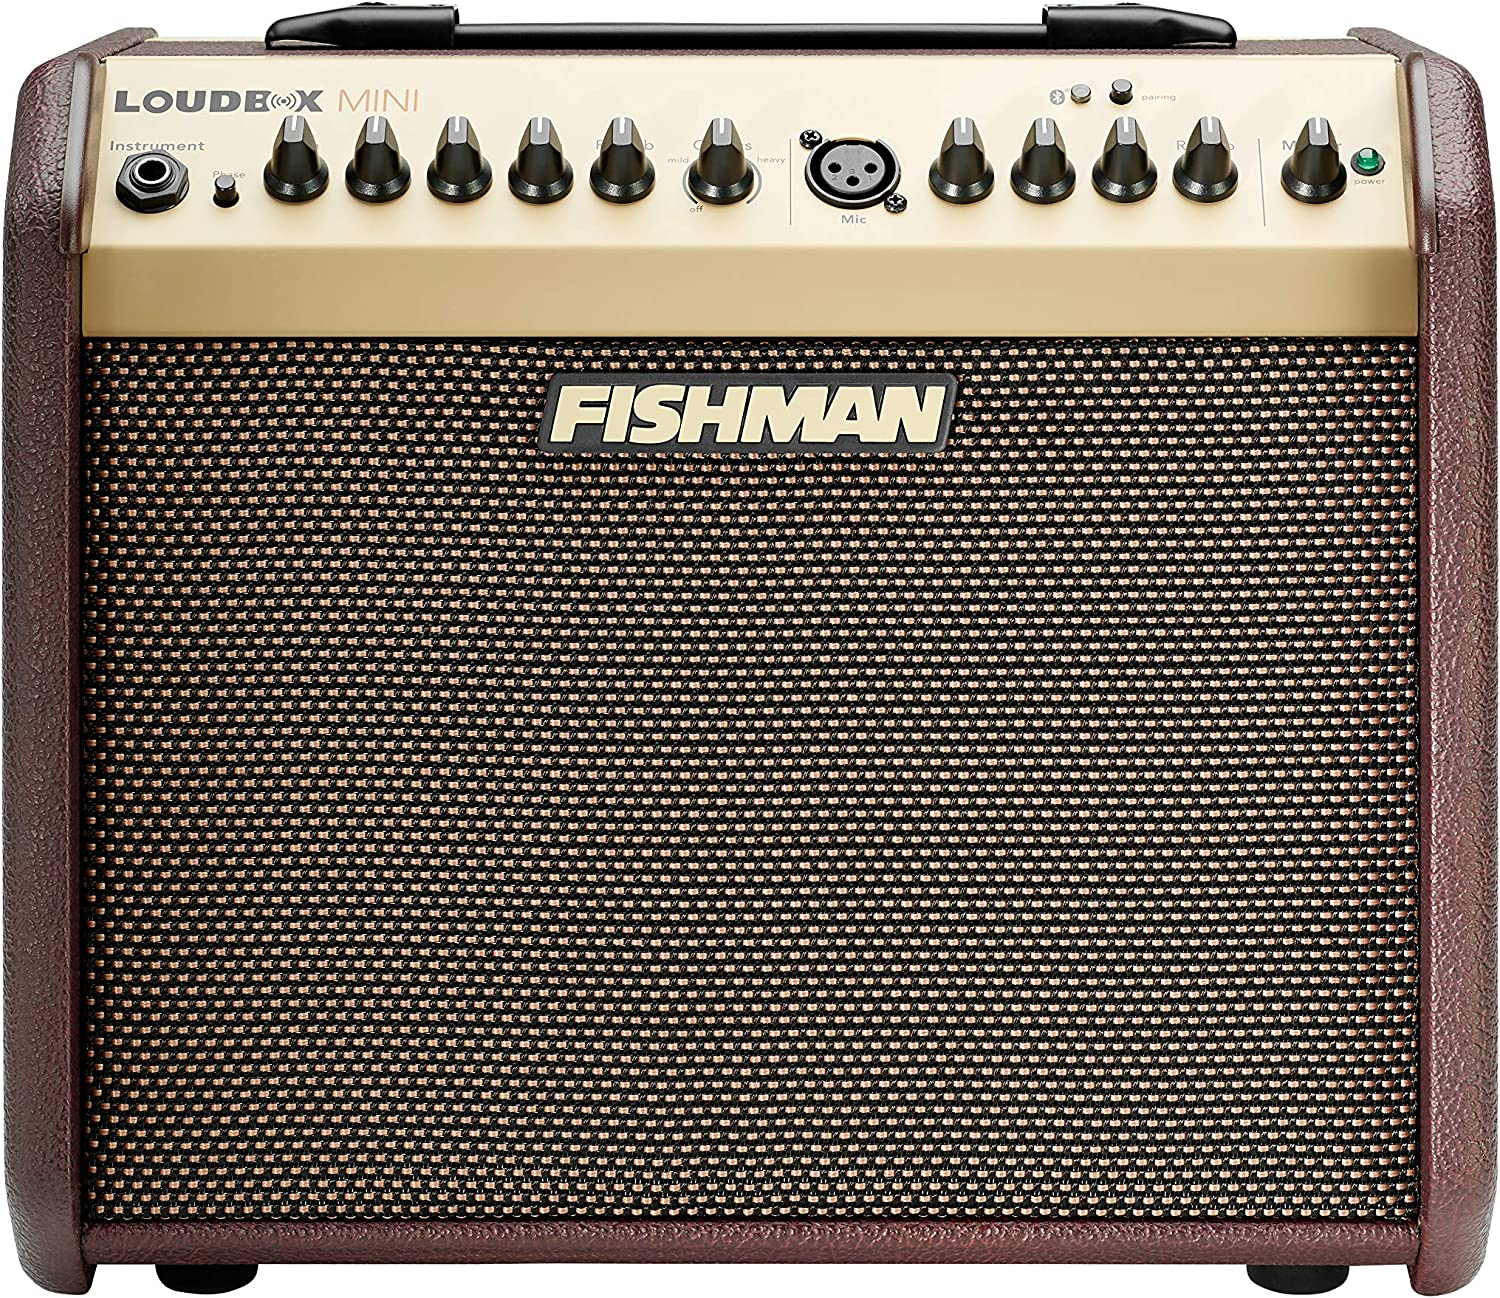 Fishman PRO-LBT-500 Loudbox Mini Acoustic Guitar Bluetooth Amplifier